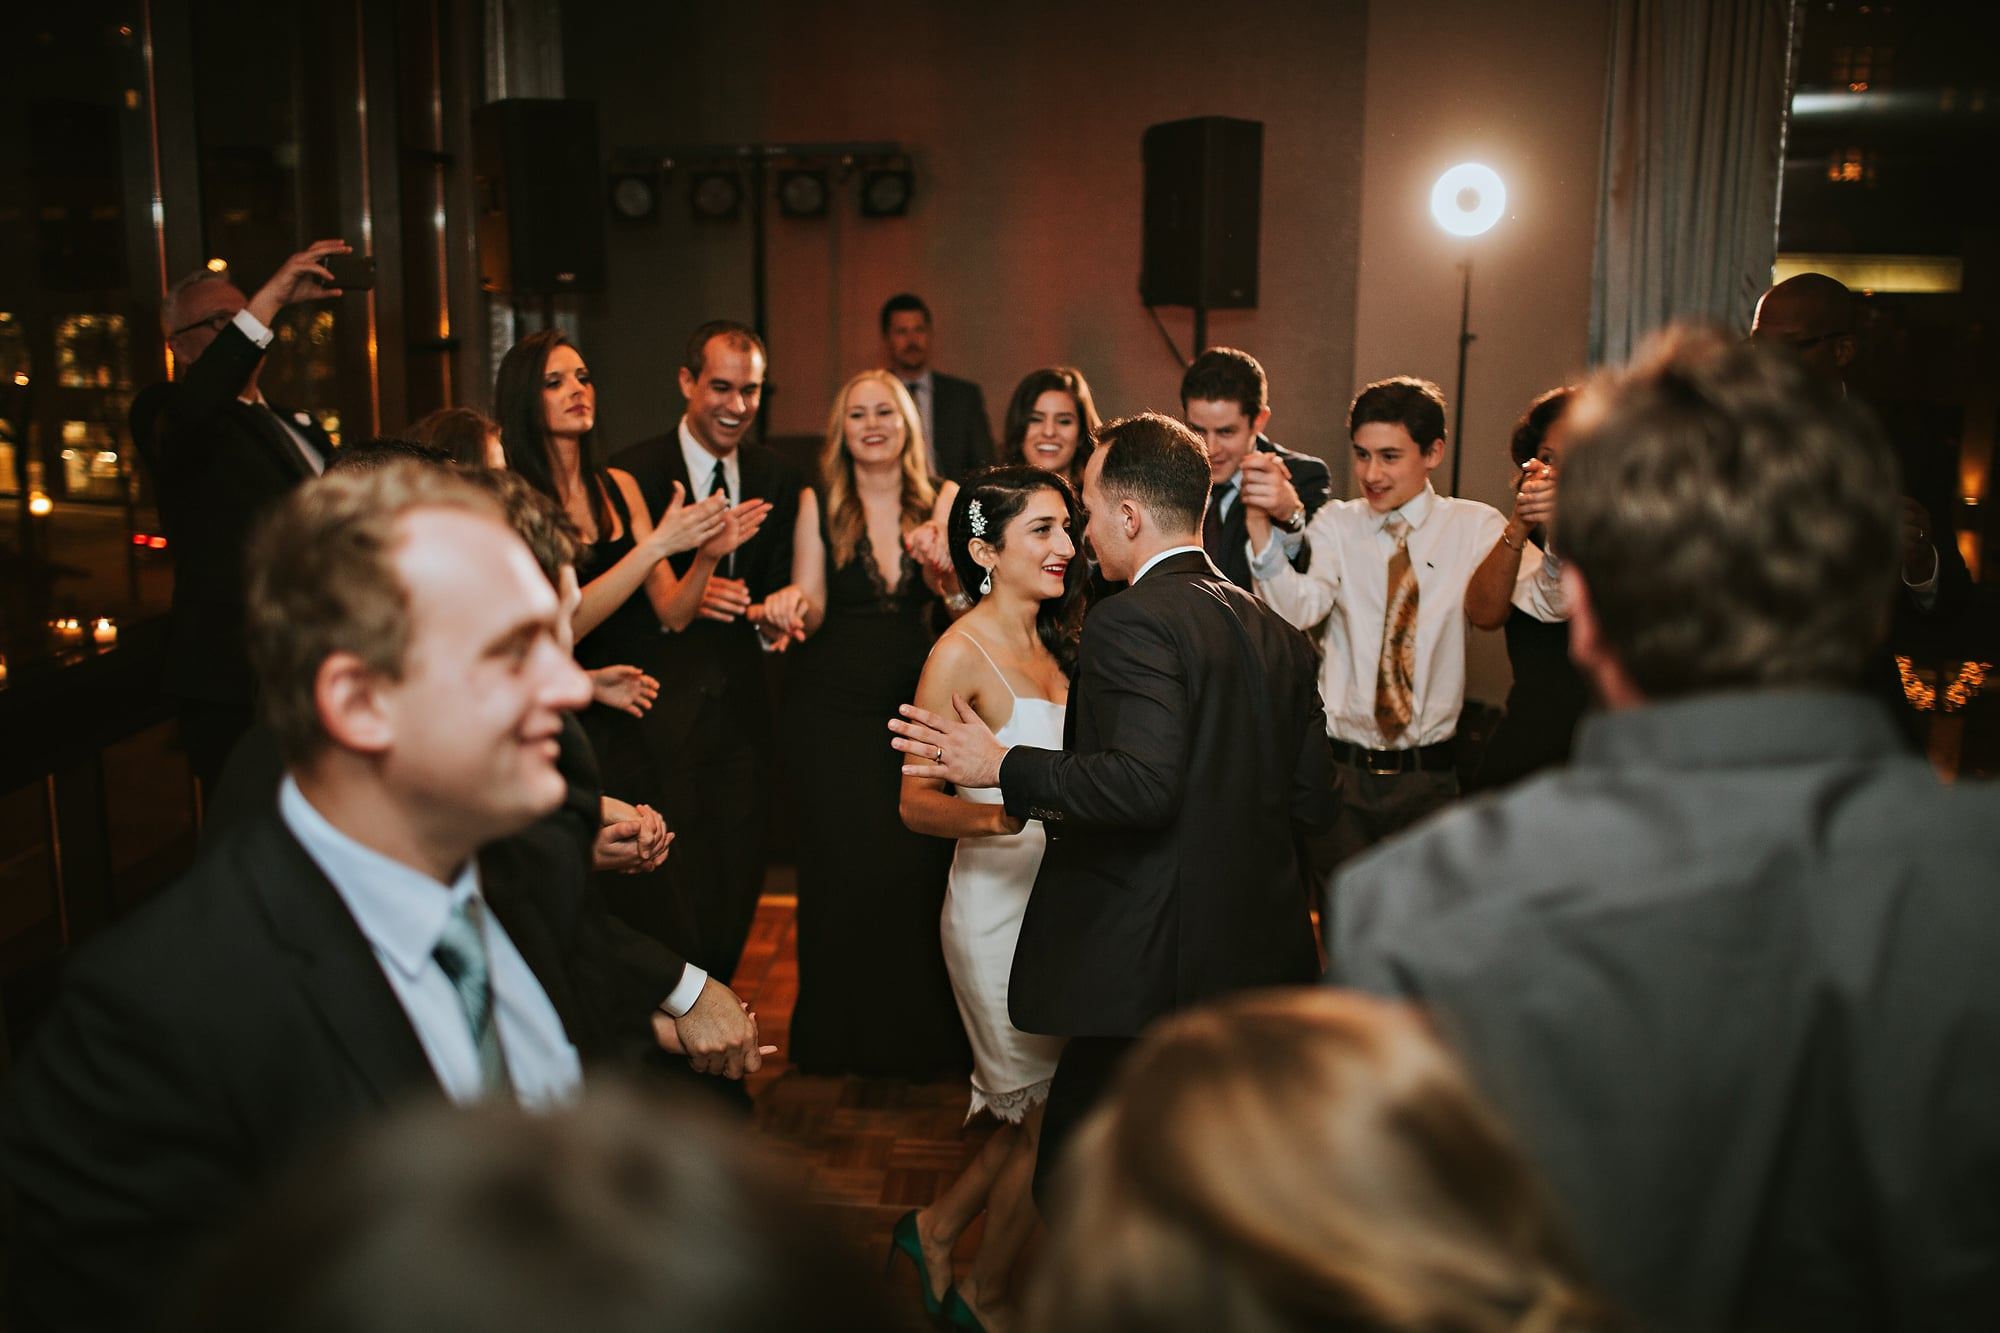 rachel gulotta photography Chicago Wedding-66.jpg